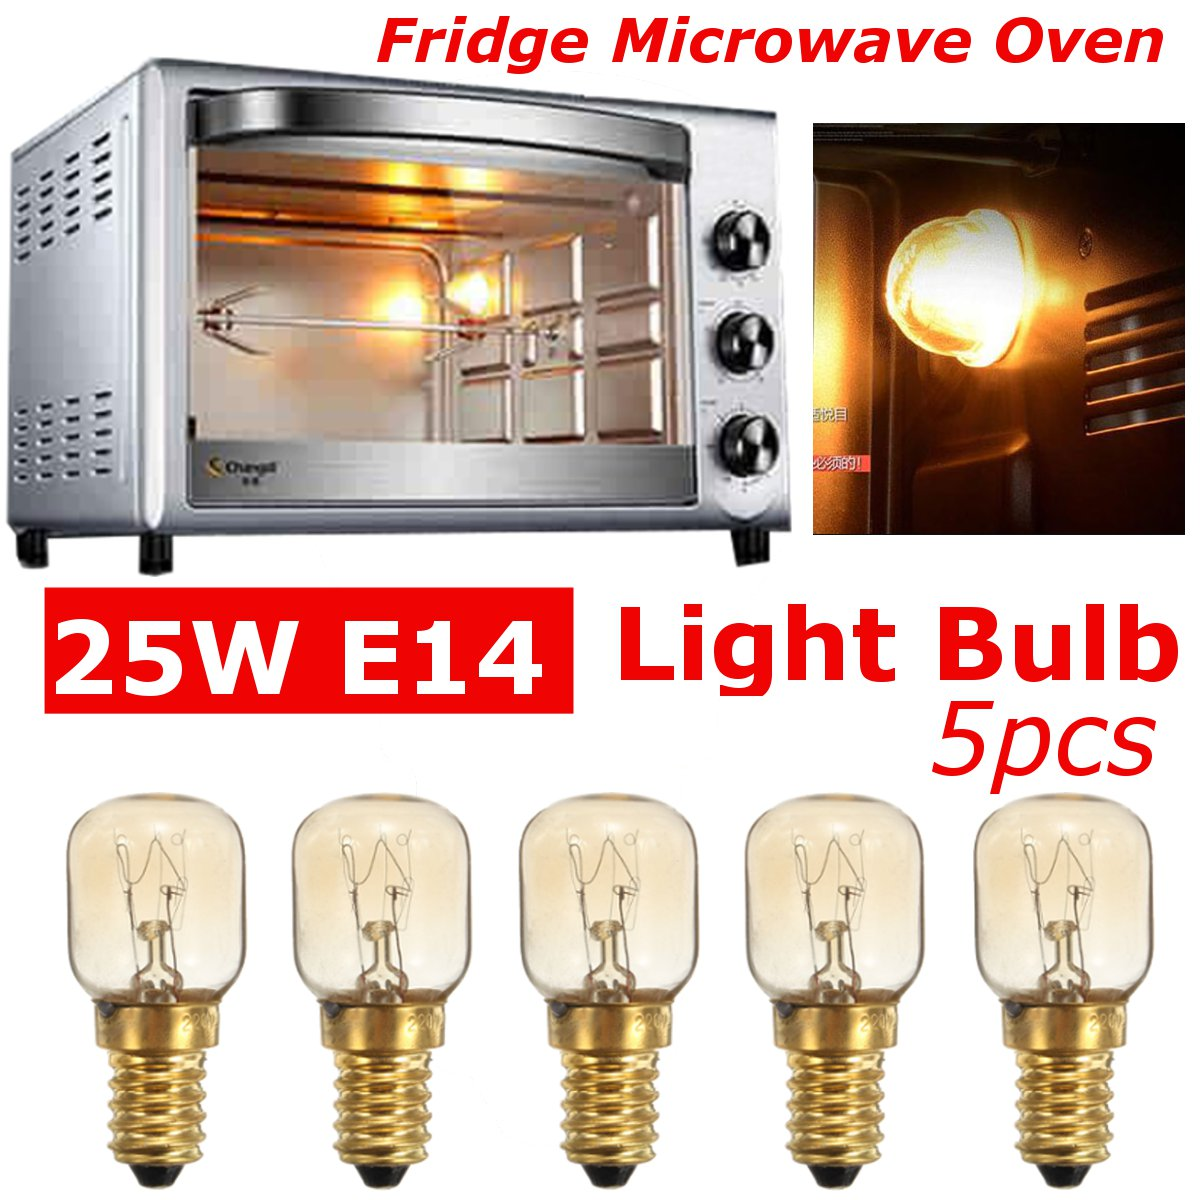 5Pcs Microwave Oven Light Lamp Bulb Base Design 250V 25W Replacement Universal E14 Screw In Light Bulbs High Temperature Lamps